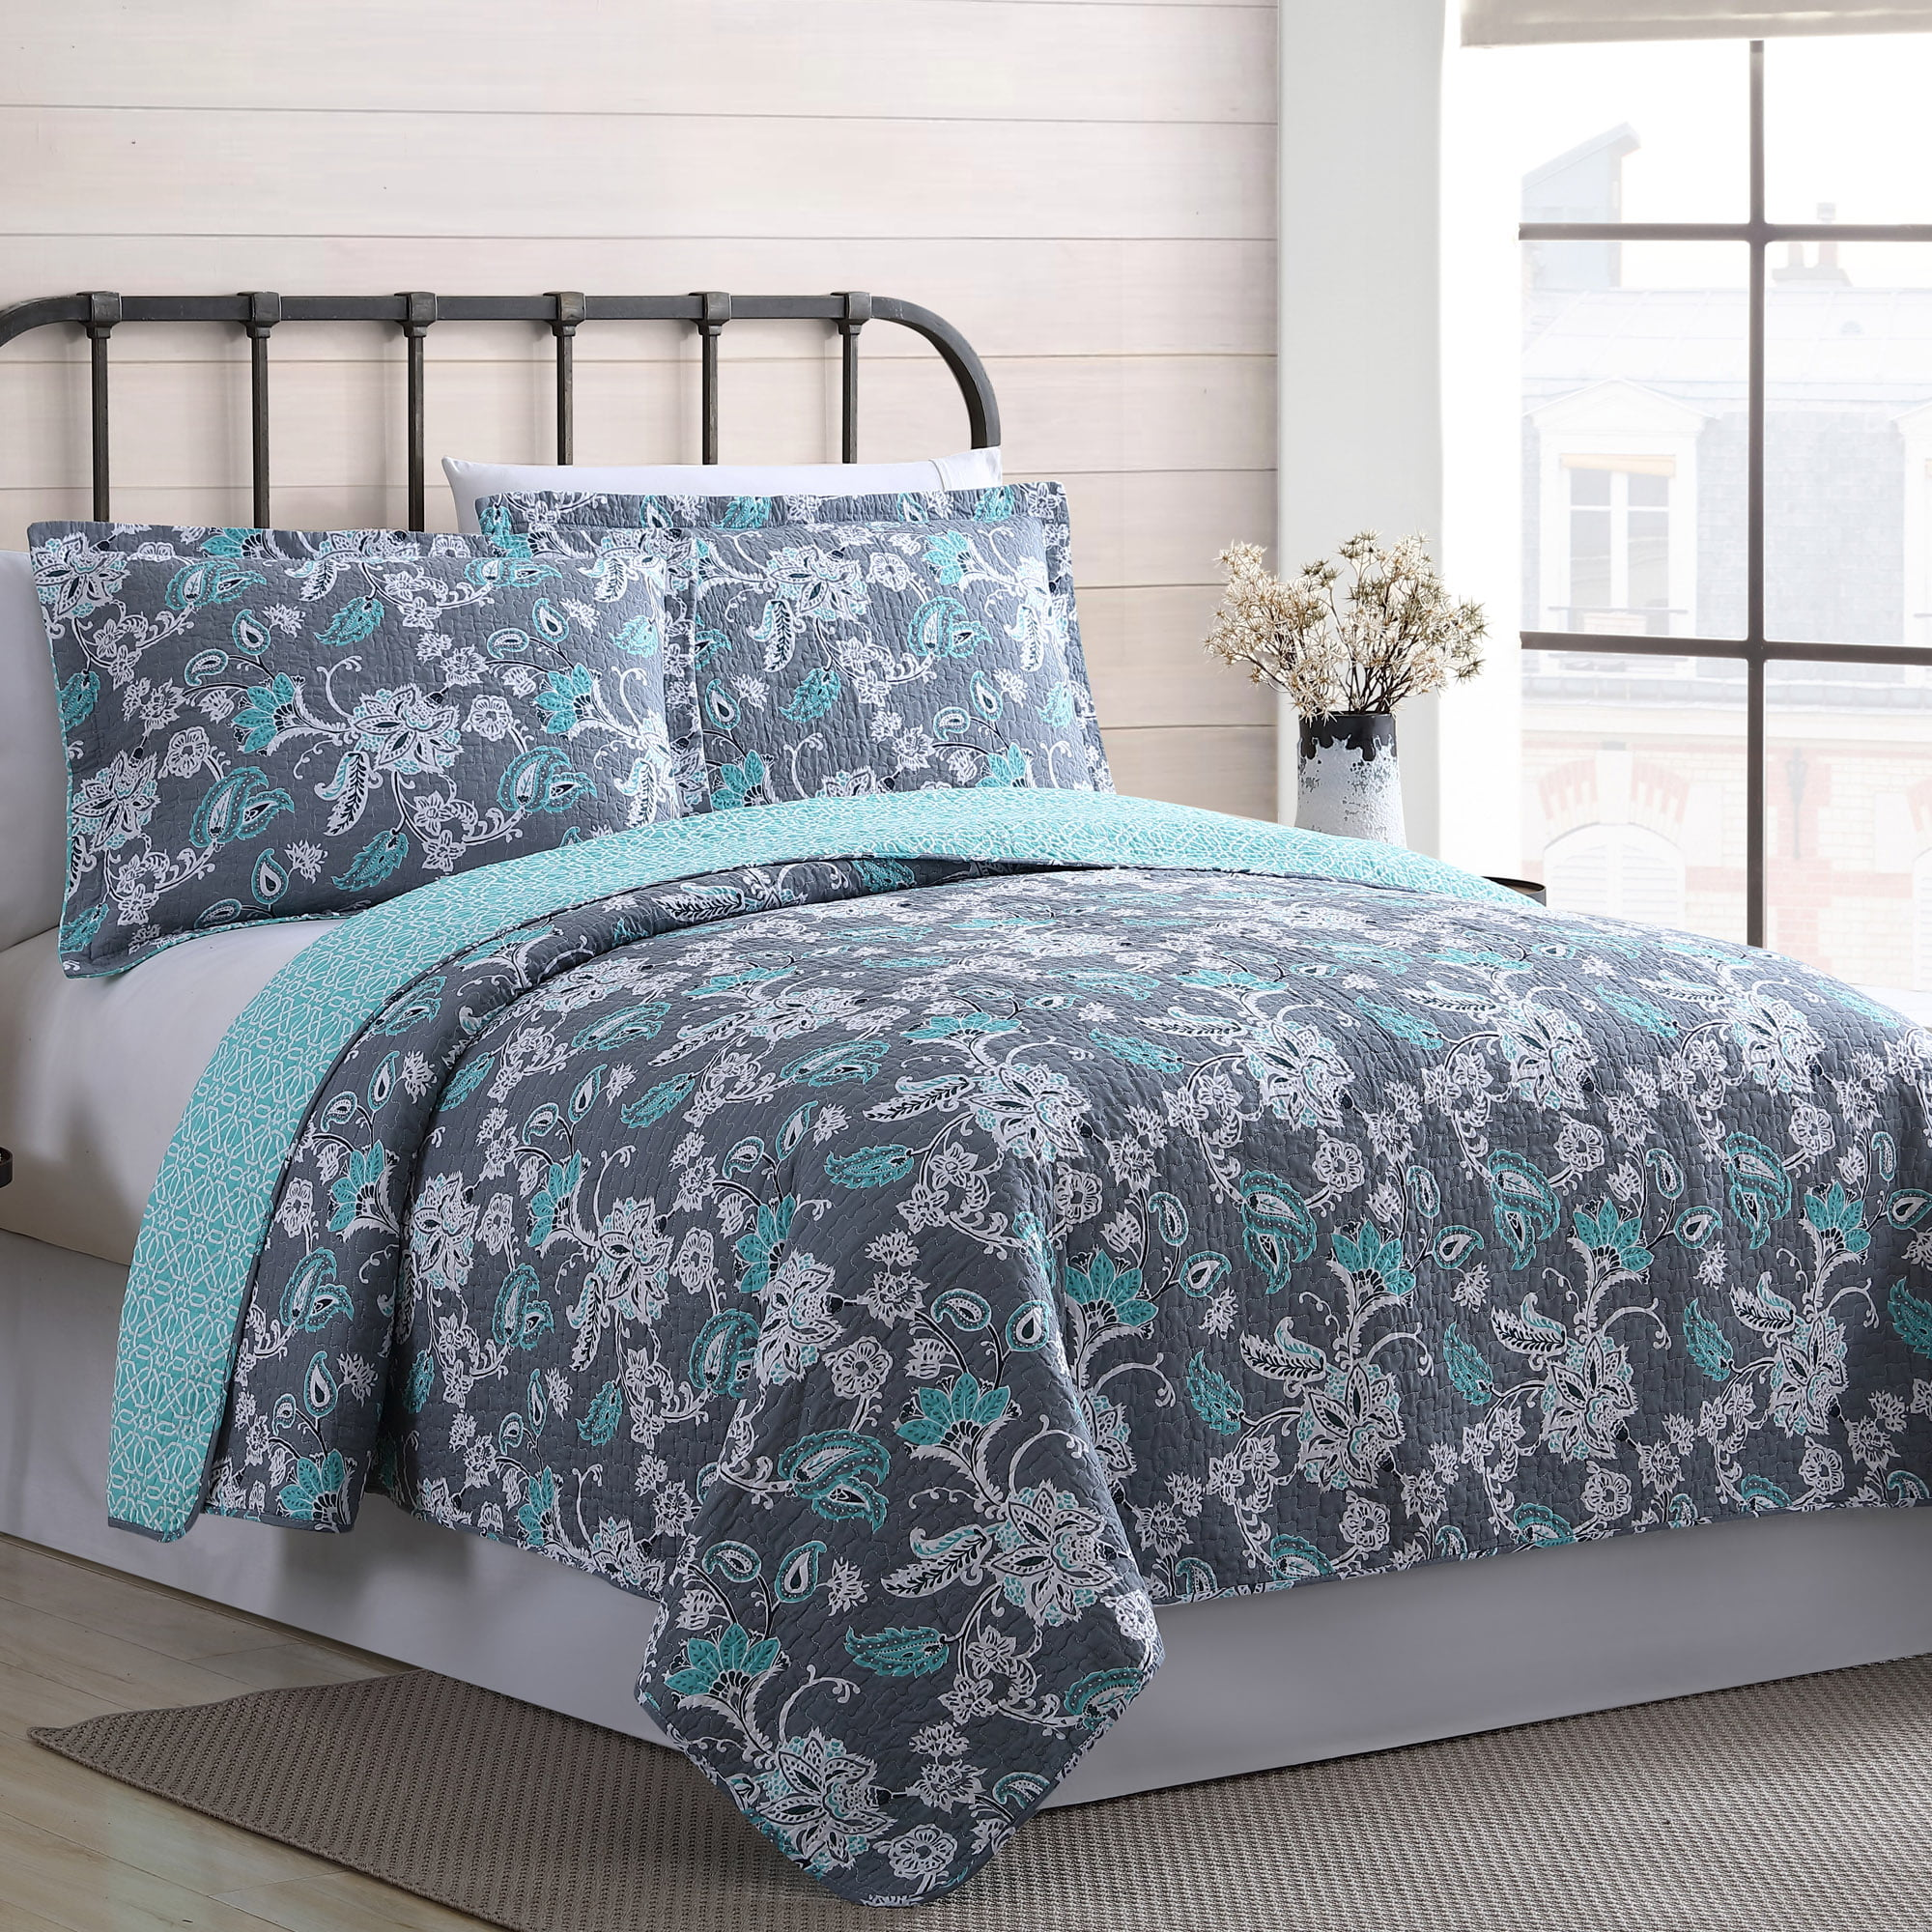 Modern Threads 100% Cotton 3 Piece Printed Reversible Quilt Set - Agnes King